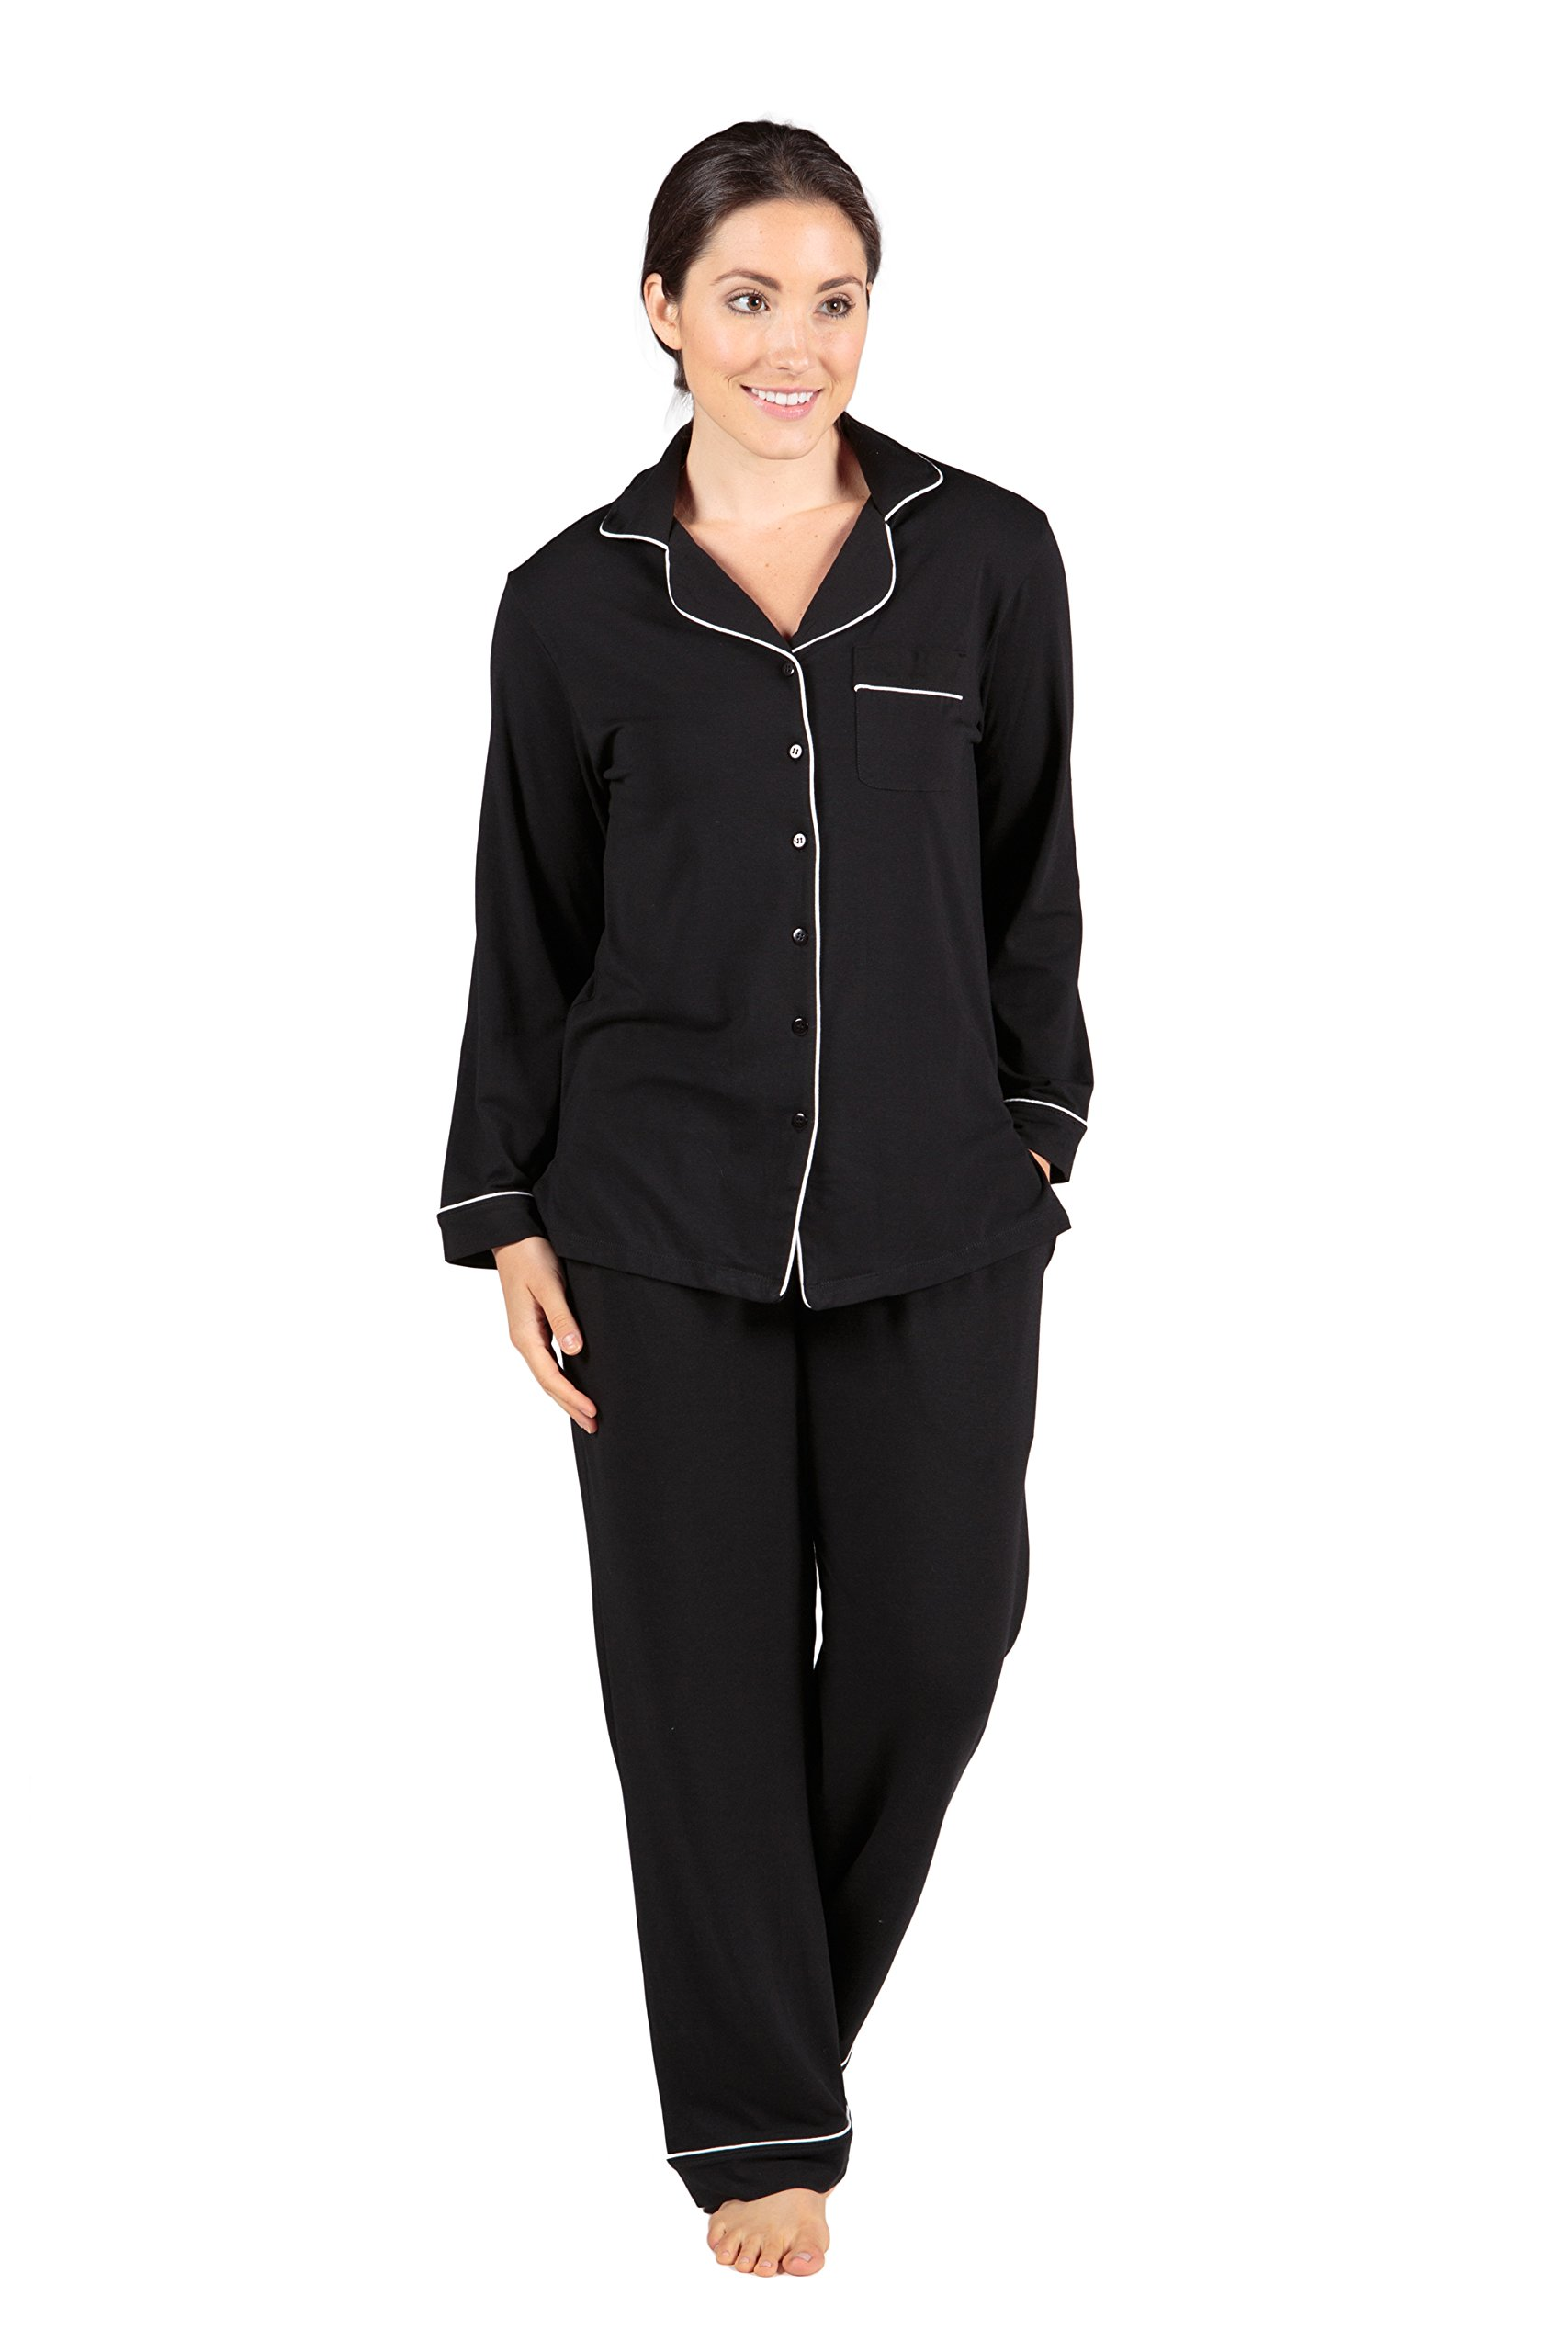 Women's Button-Up Long Sleeve Pajamas - Sleepwear set by Texere (Classicomfort, Black, Small/Petite) Comfy Long Sleeve Pajama Set for Ladies WB0004-BLK-SP